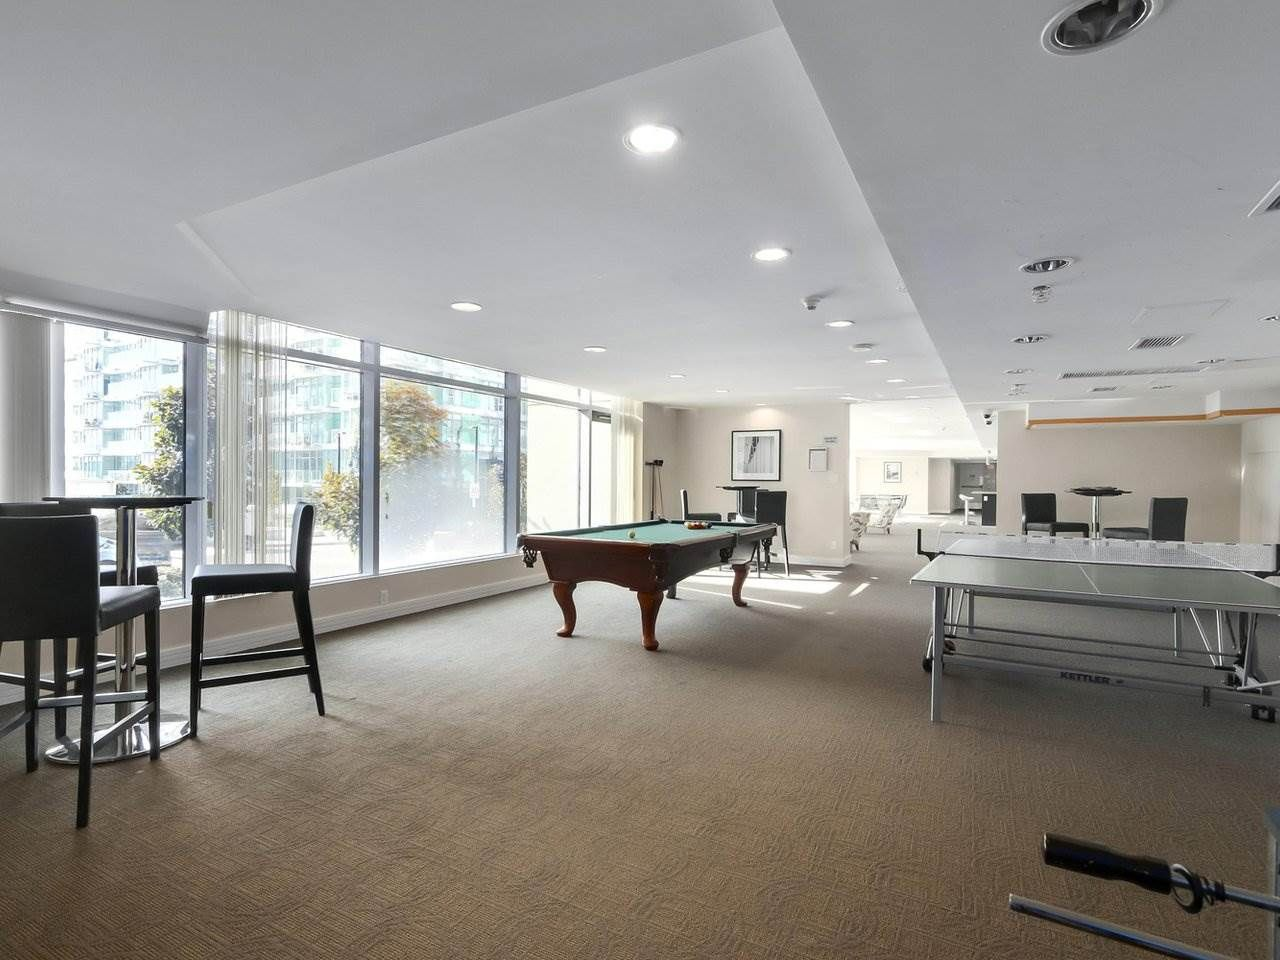 """Photo 15: Photos: 608 172 VICTORY SHIP Way in North Vancouver: Lower Lonsdale Condo for sale in """"Atrium at the Pier"""" : MLS®# R2454404"""